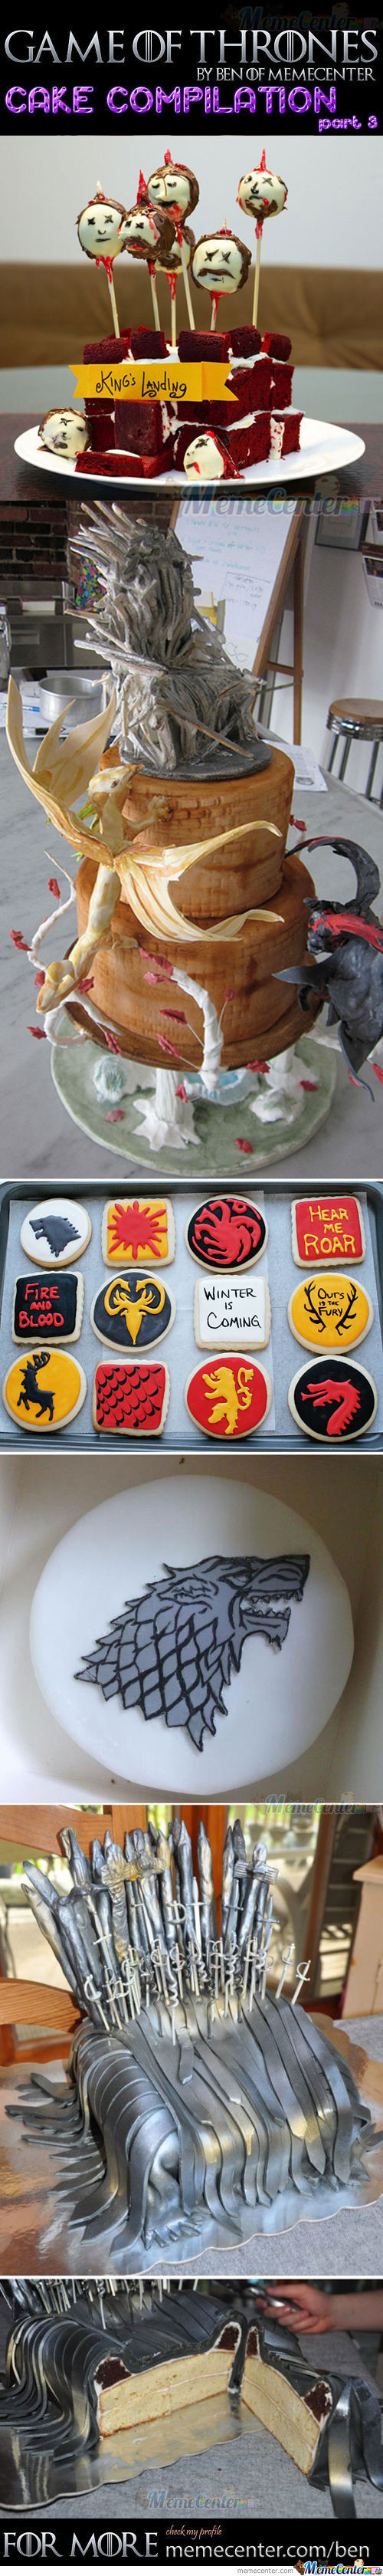 Game Of Thrones Cakes Part 3